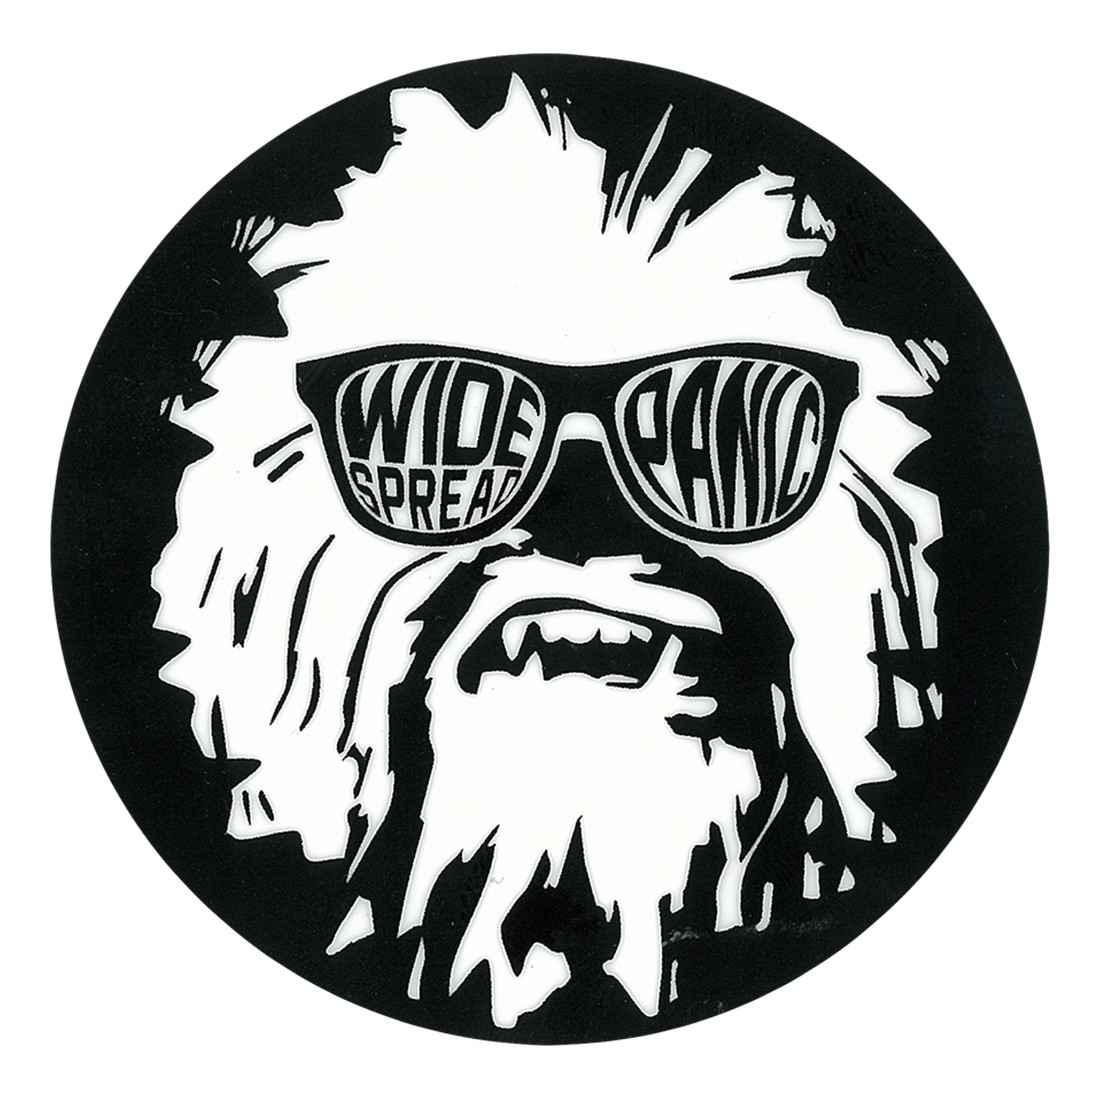 Widespread Panic Wukee Glasses Black Sticker